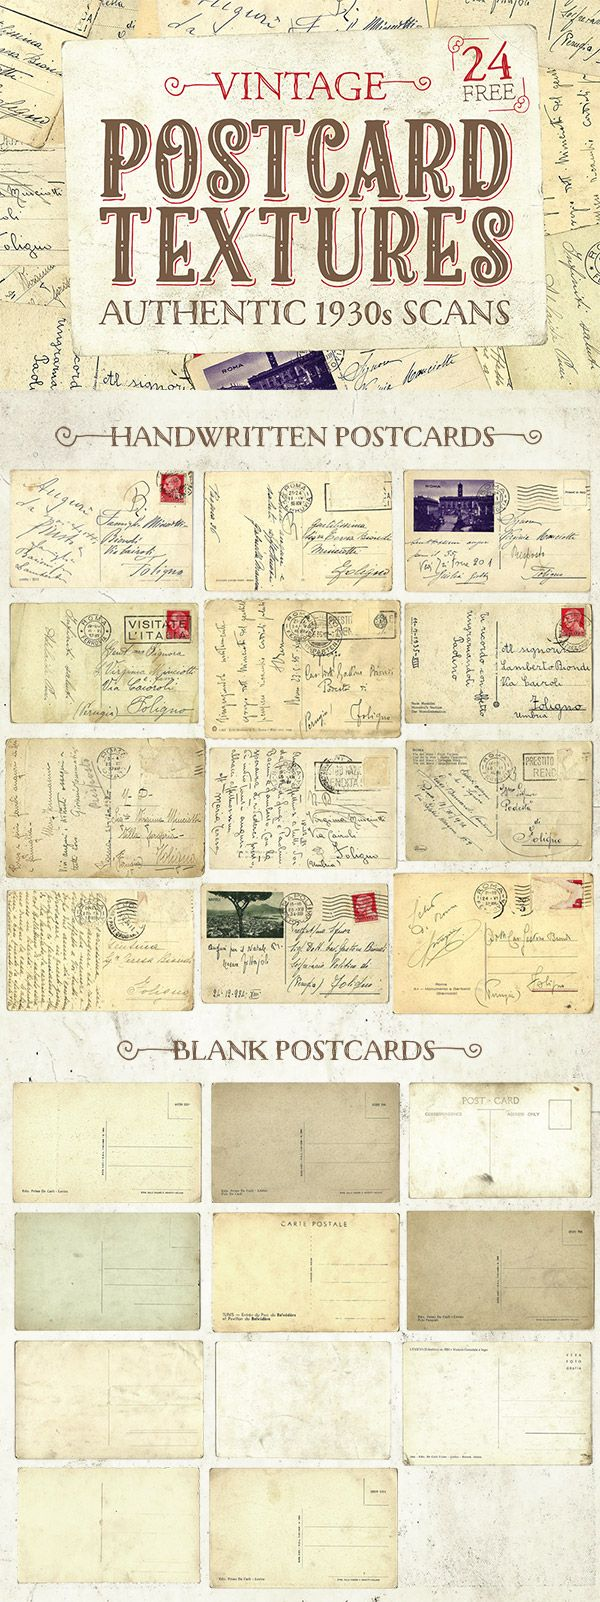 I recently inherited a box of my Grandfather's old possessions, which alongside his WW2 service books and a Great War Memorial Plaque for my great-great-uncle, also contains a number of postcards dated from the mid-1930s. As well as being treasured heirlooms, the aged paper textures of these postcards also make fantastic design resources! Download this … .